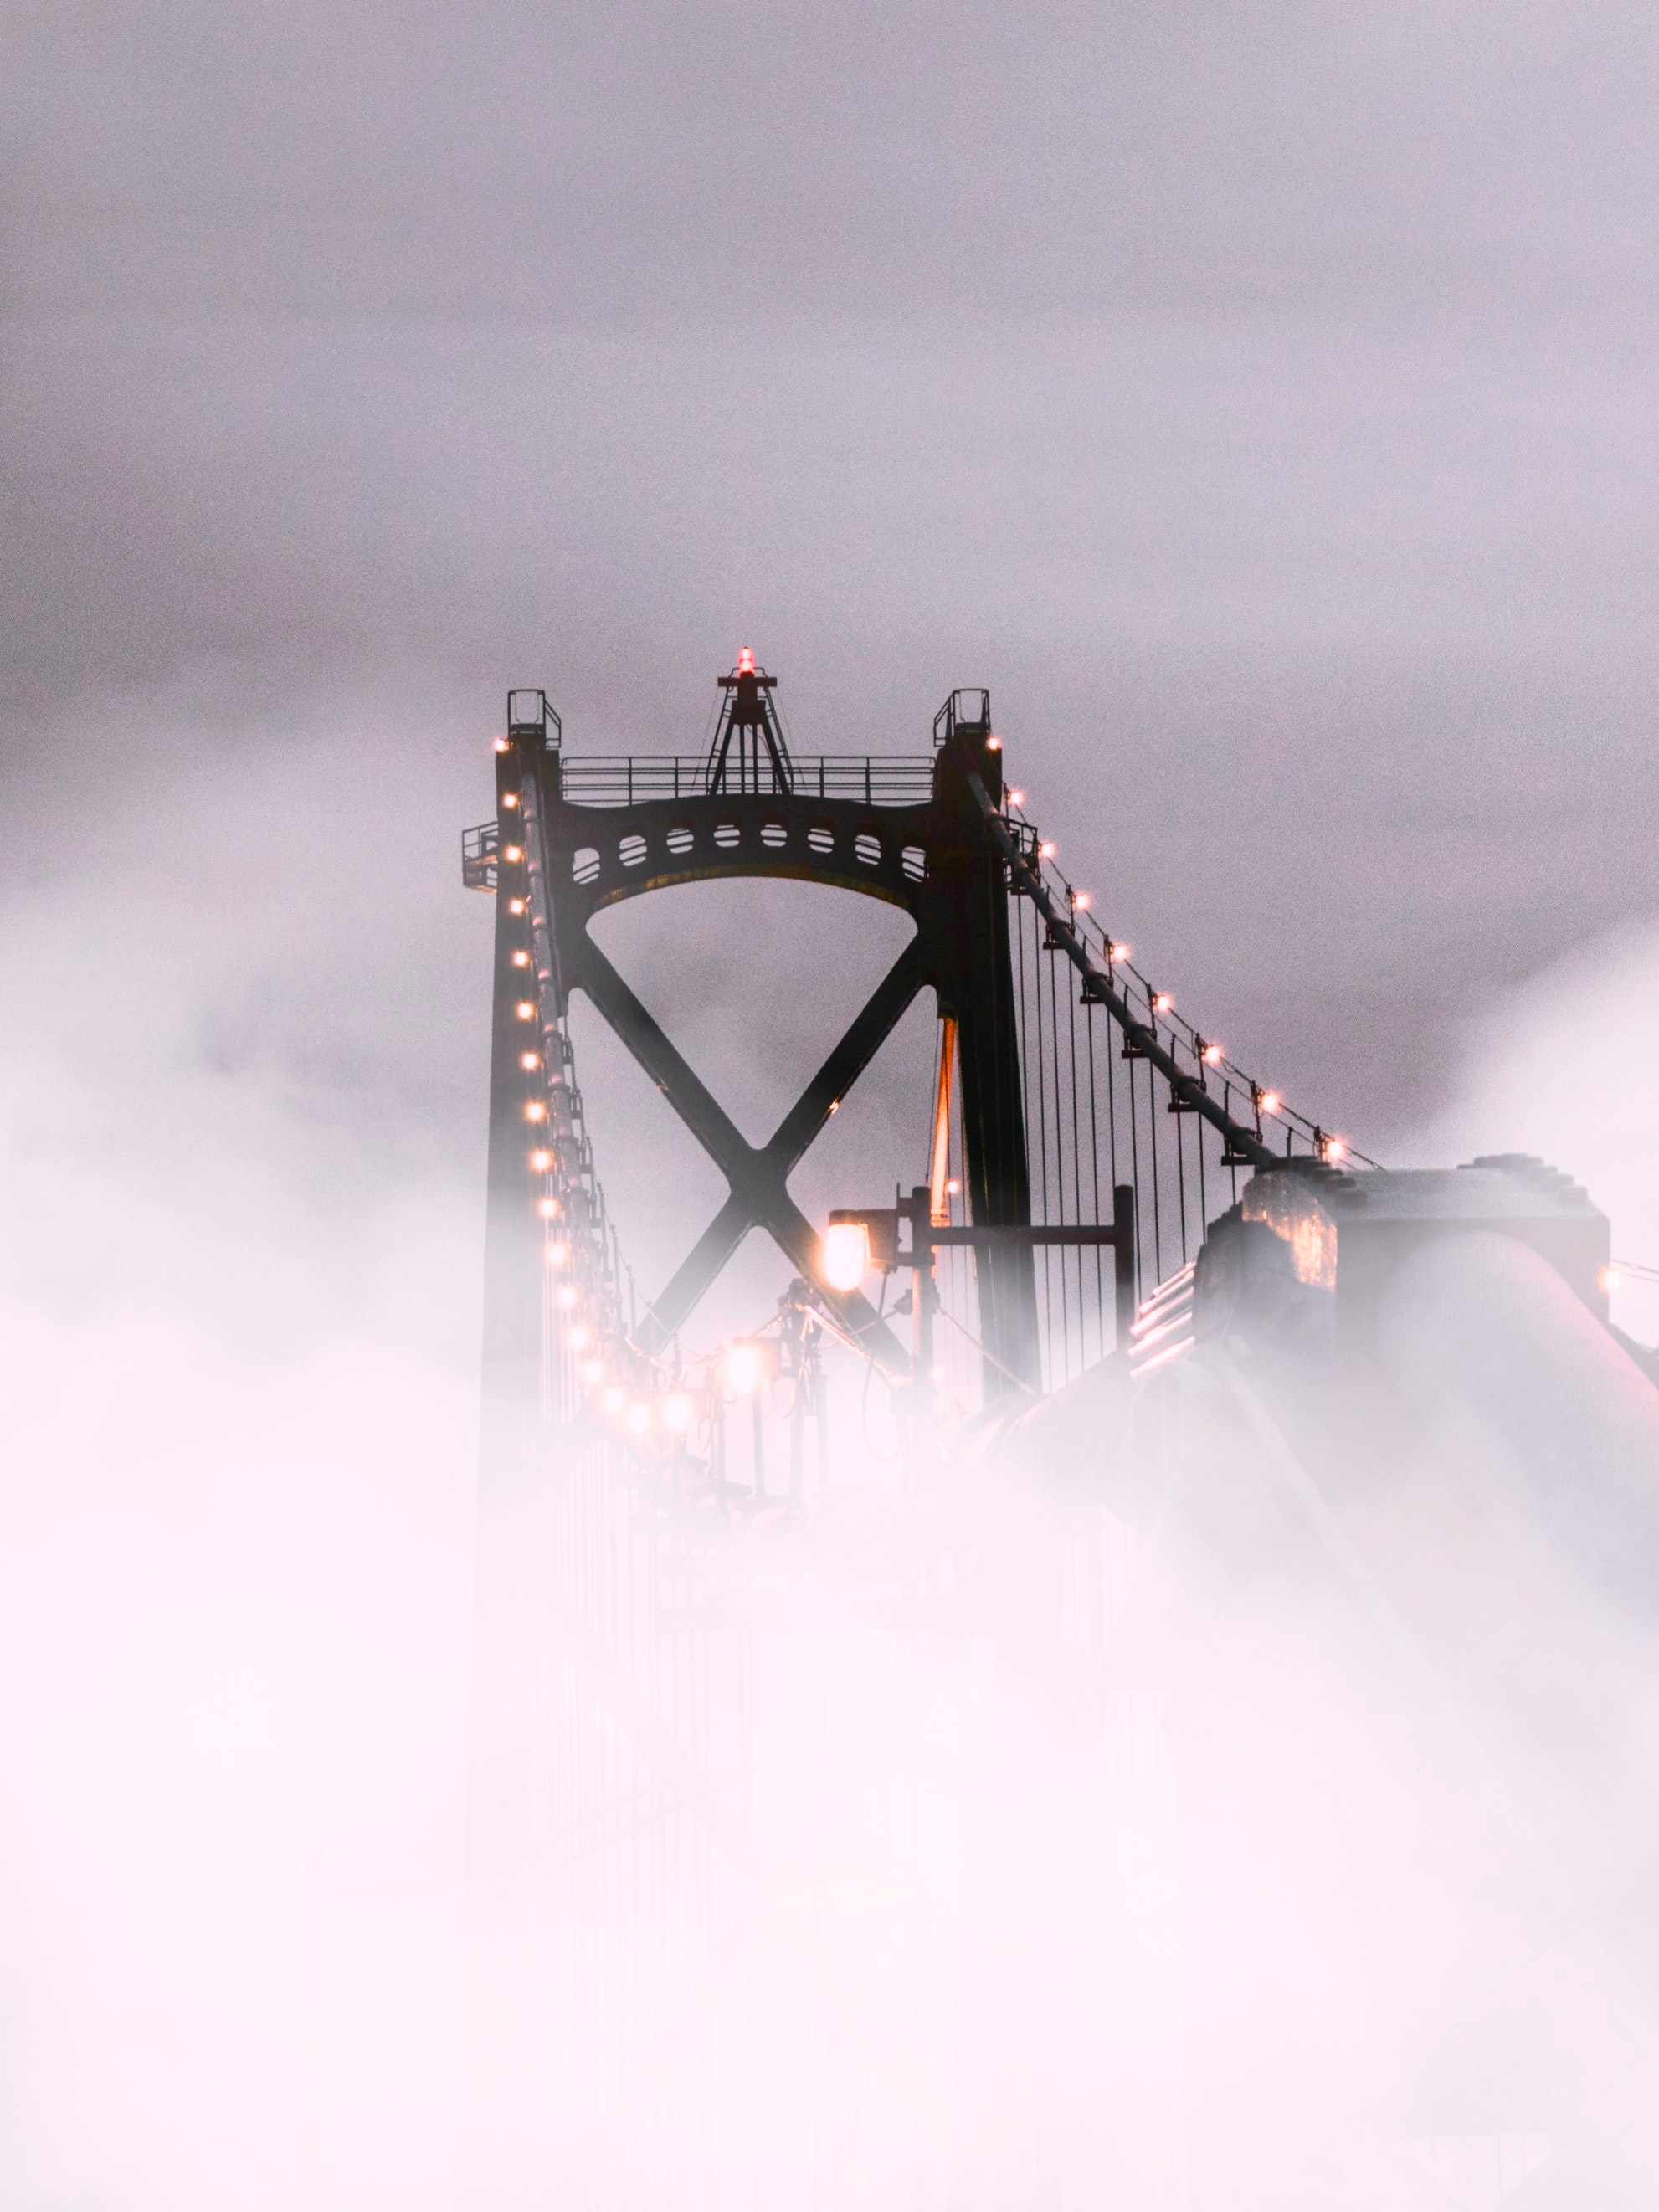 Suspension bridge covered with fog